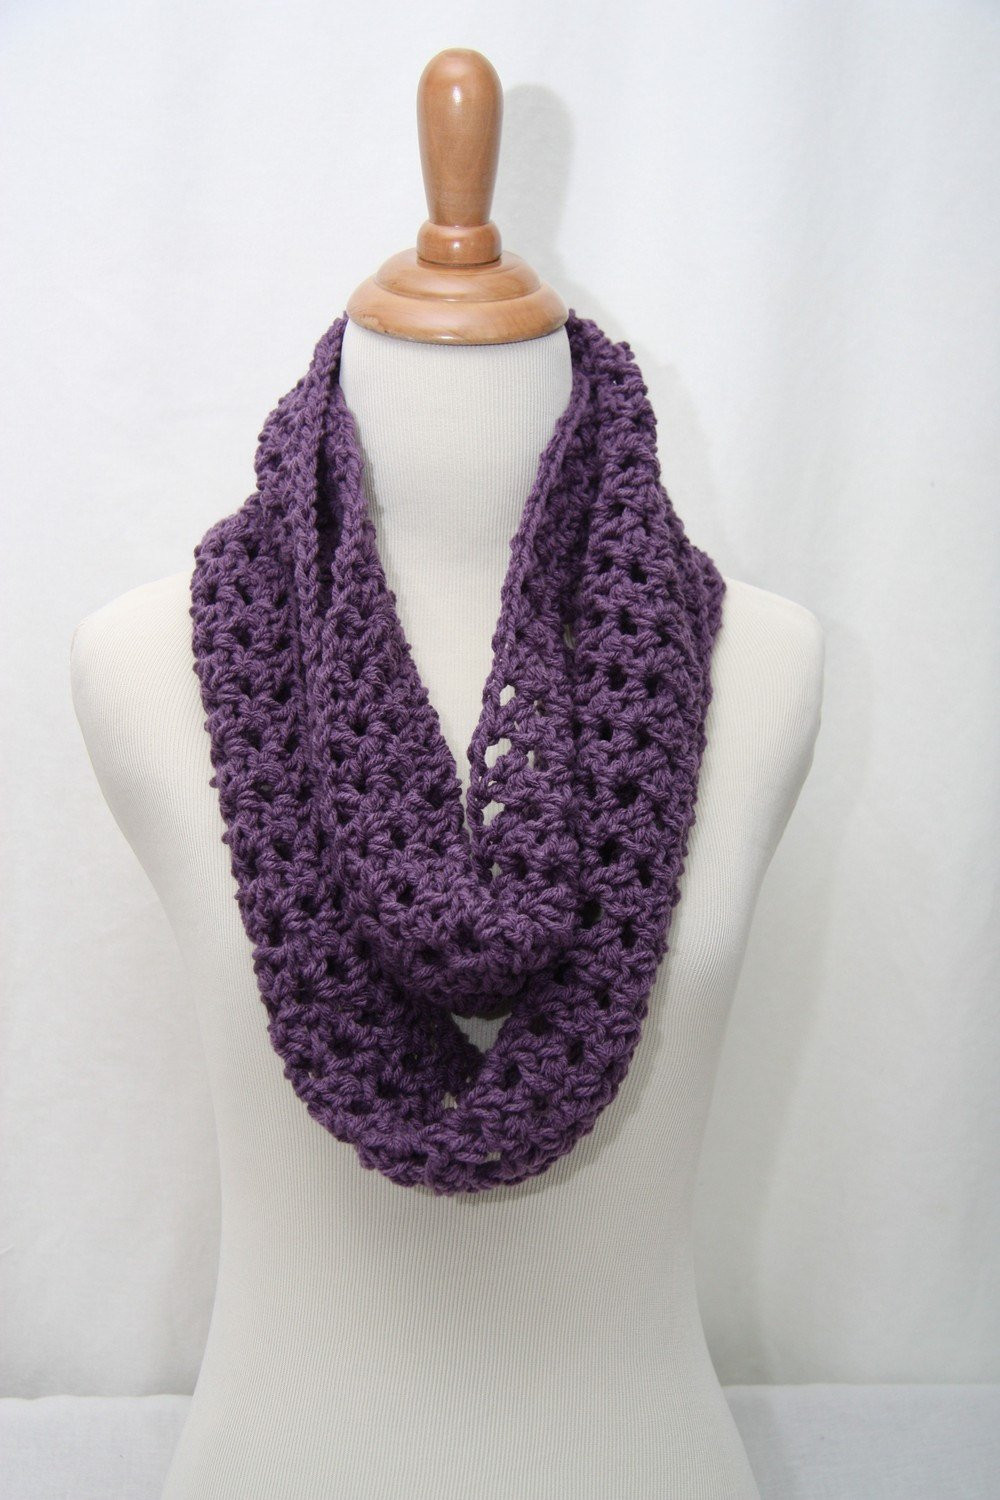 Crochet Neck Scarf Unique Crochet Cowl Neck Scarf Aqua Purple and Black by Shiara Of Great 50 Ideas Crochet Neck Scarf